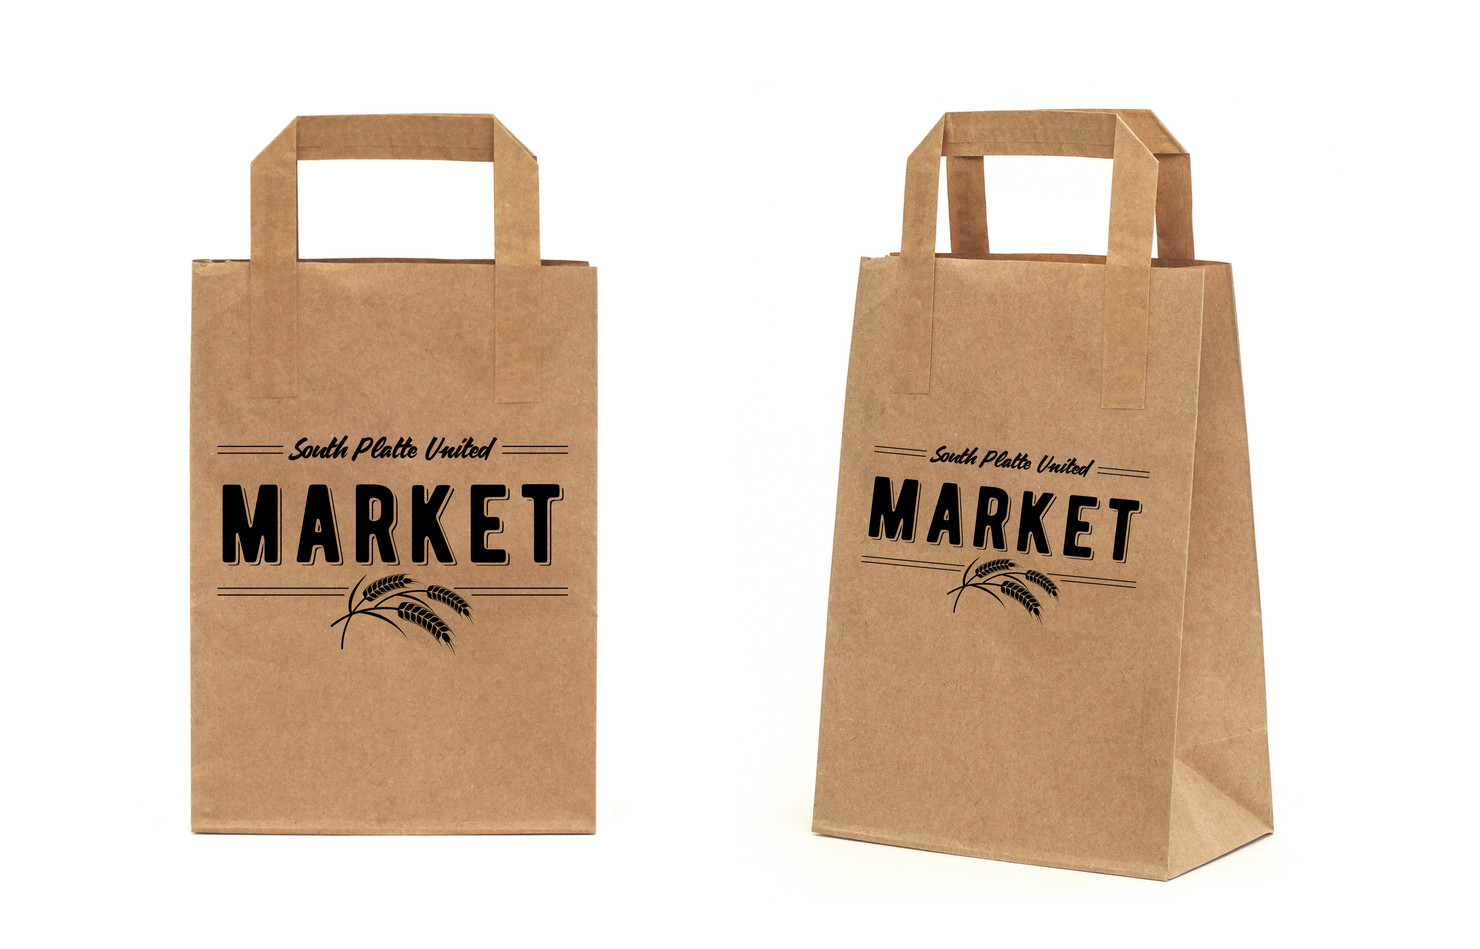 South Platte Market Idea 3 Brown Bag.jpg